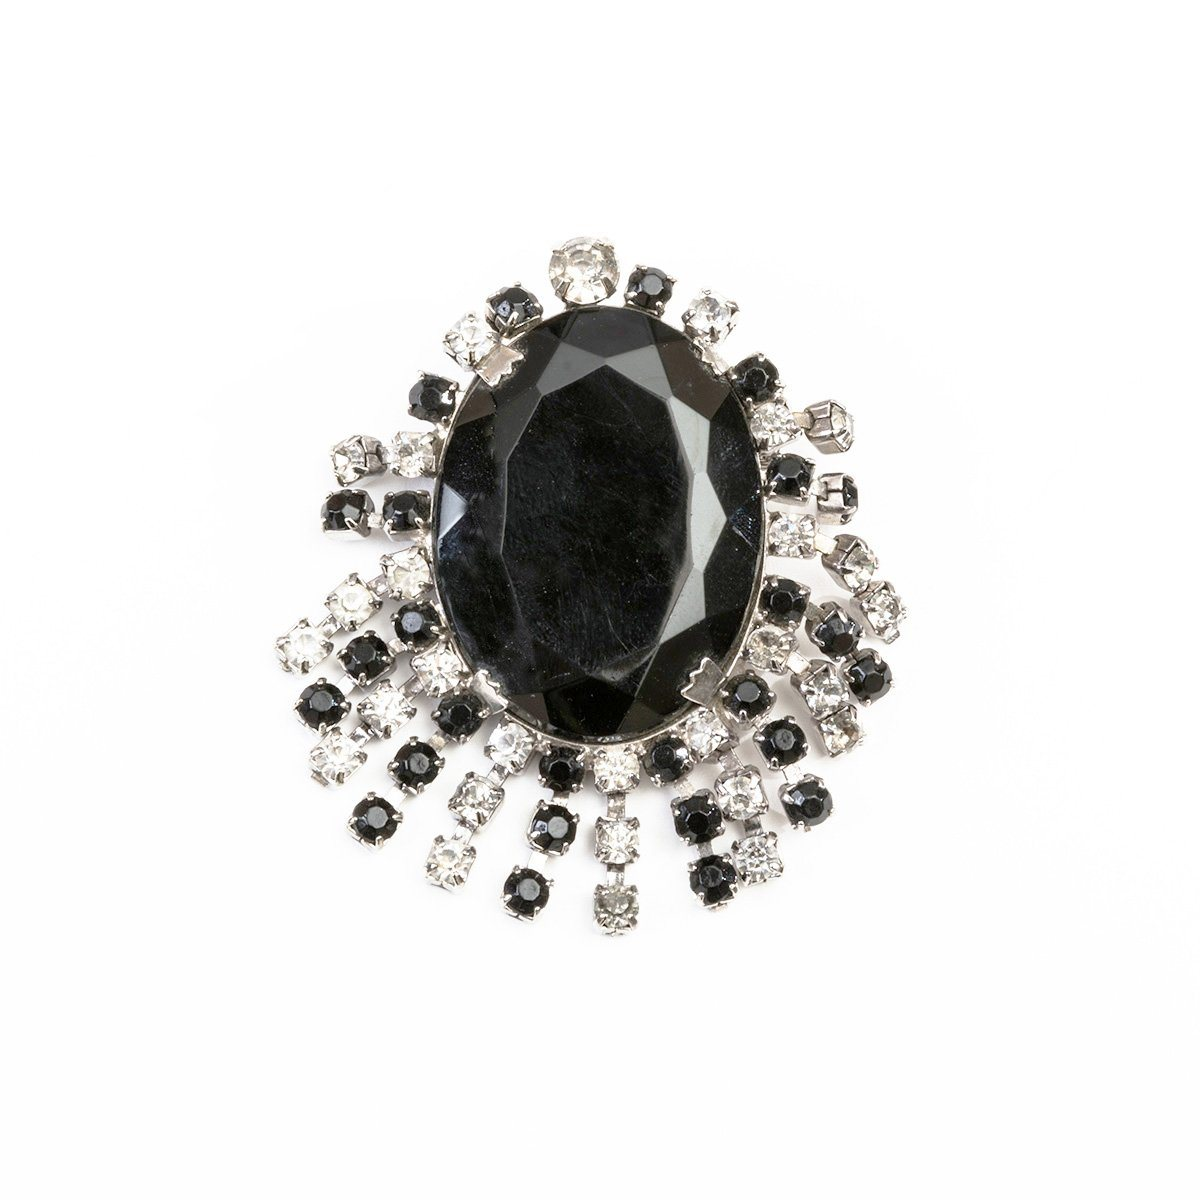 Vintage Rhinestone Fringe Brooch, Faceted Black Glass Center